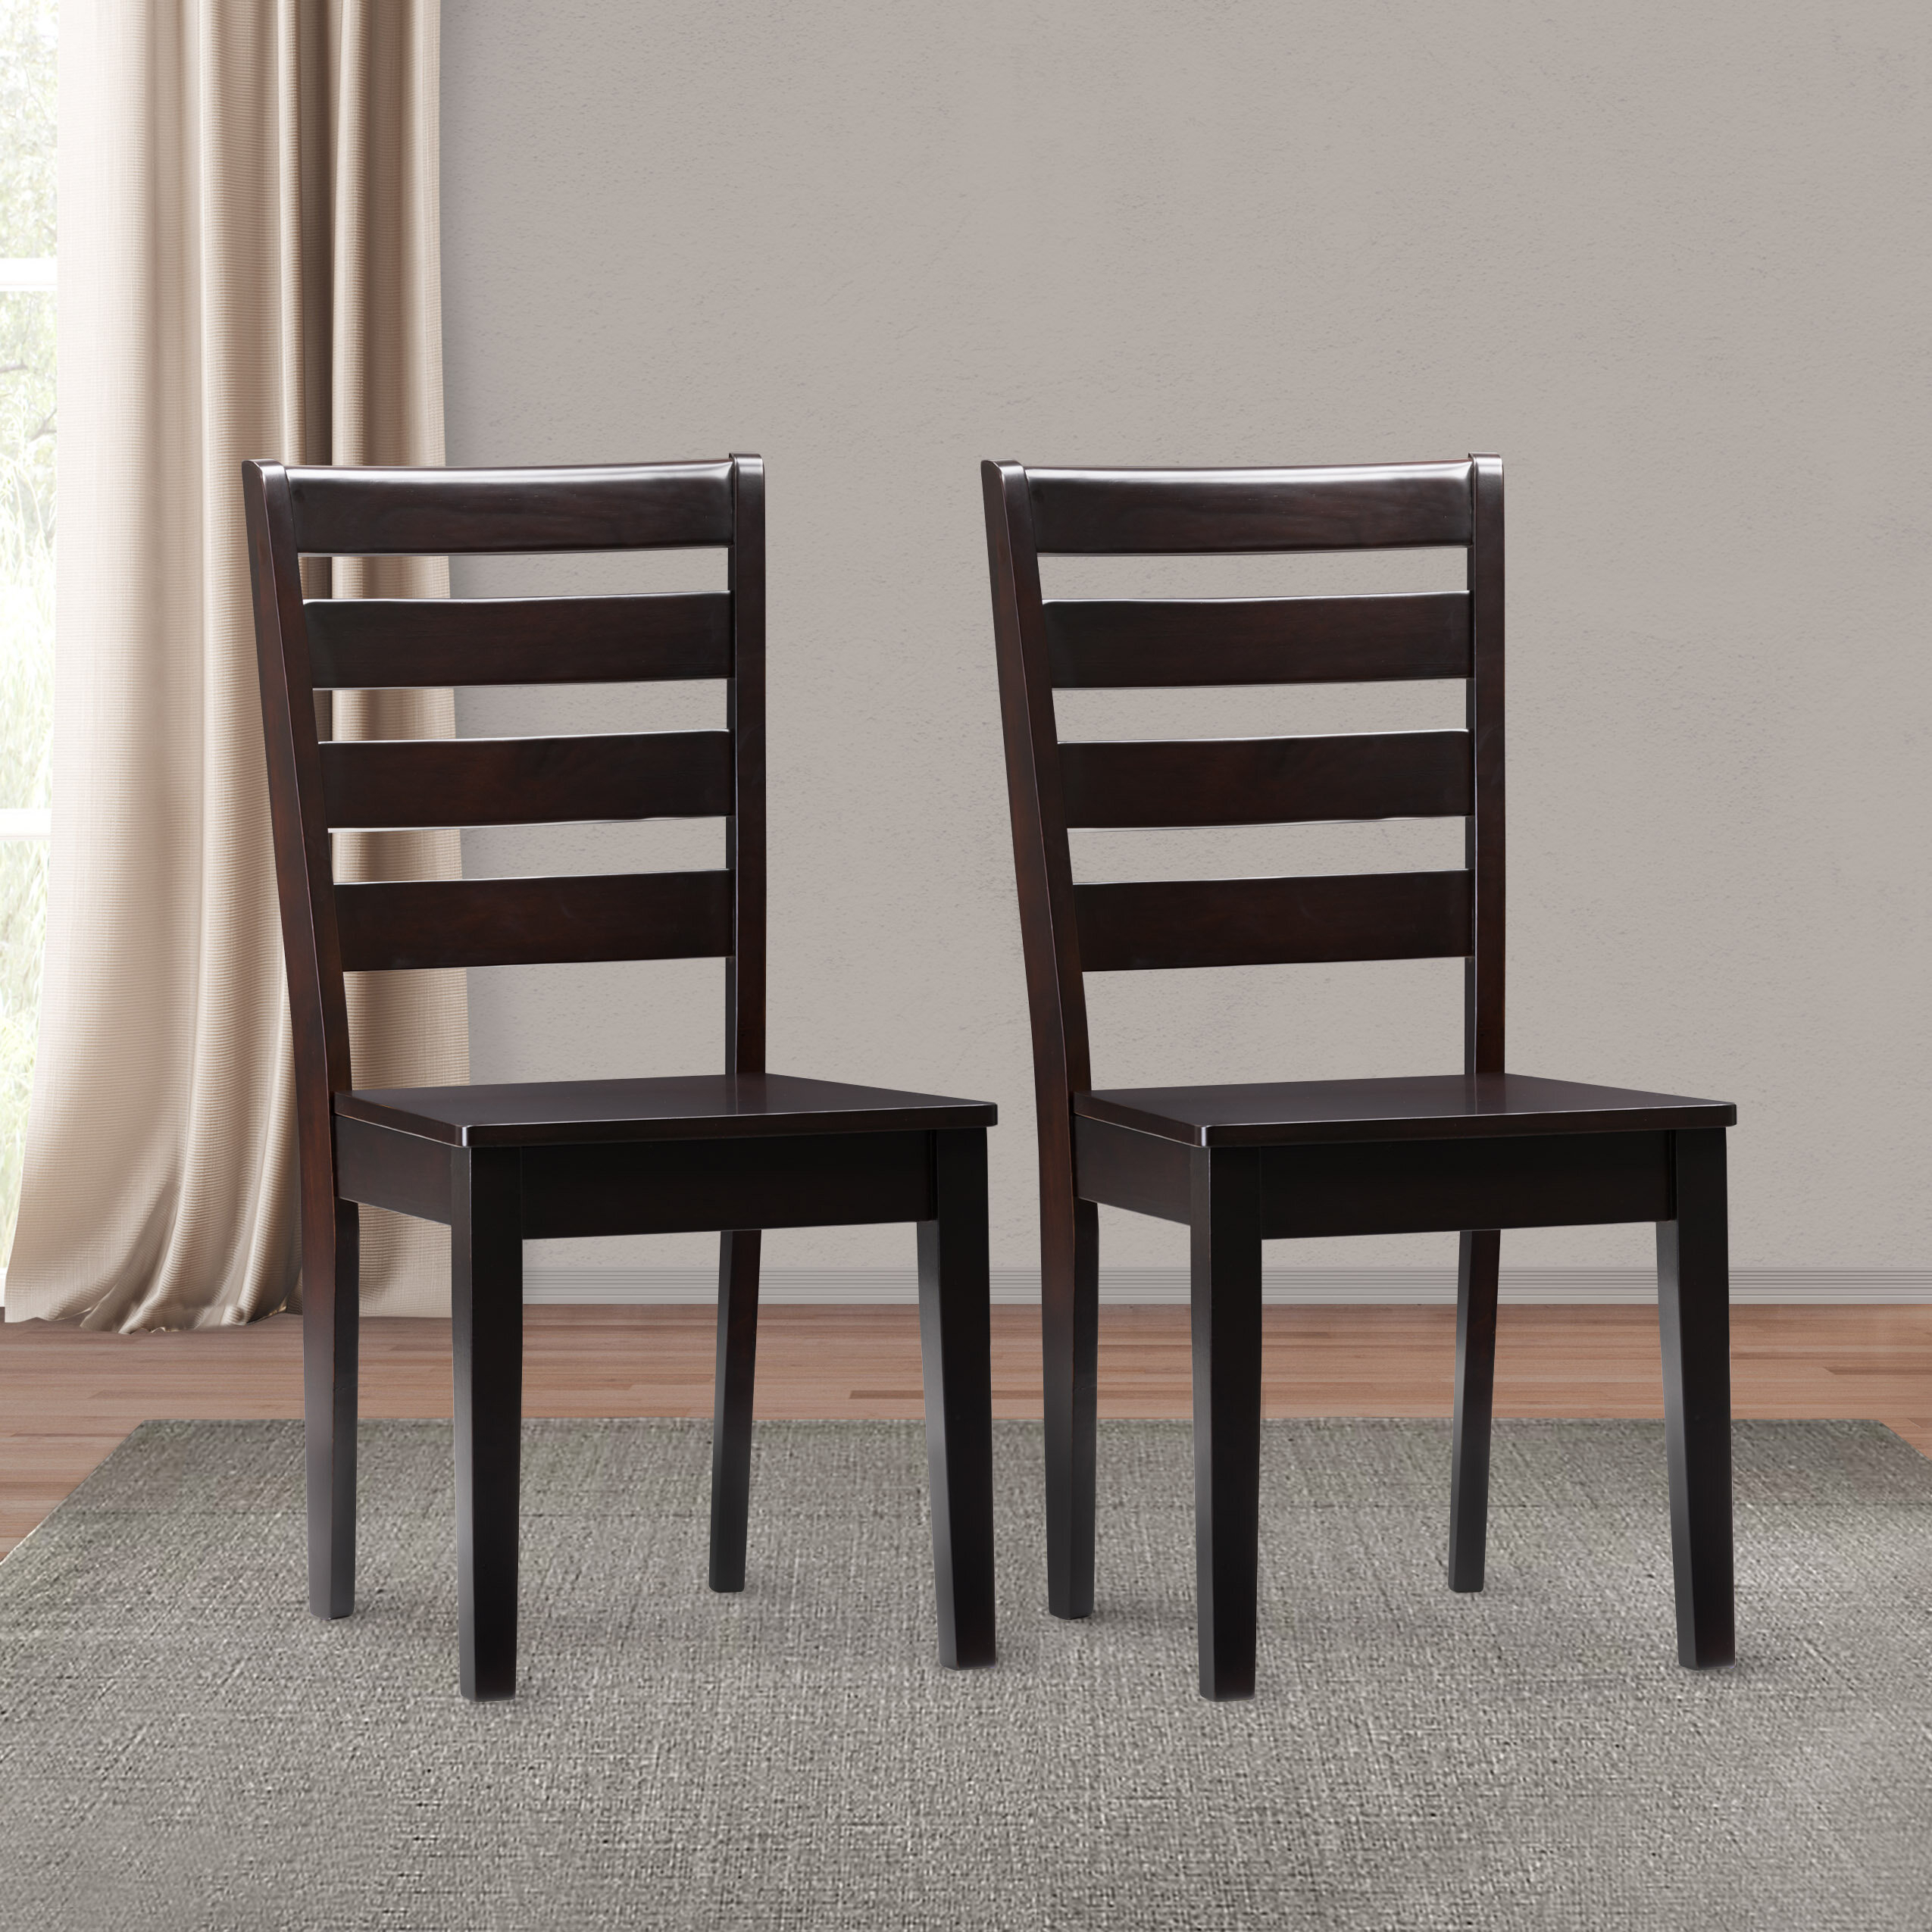 Wayfair Regarding Newest Goodman 5 Piece Solid Wood Dining Sets (Set Of 5) (View 16 of 20)